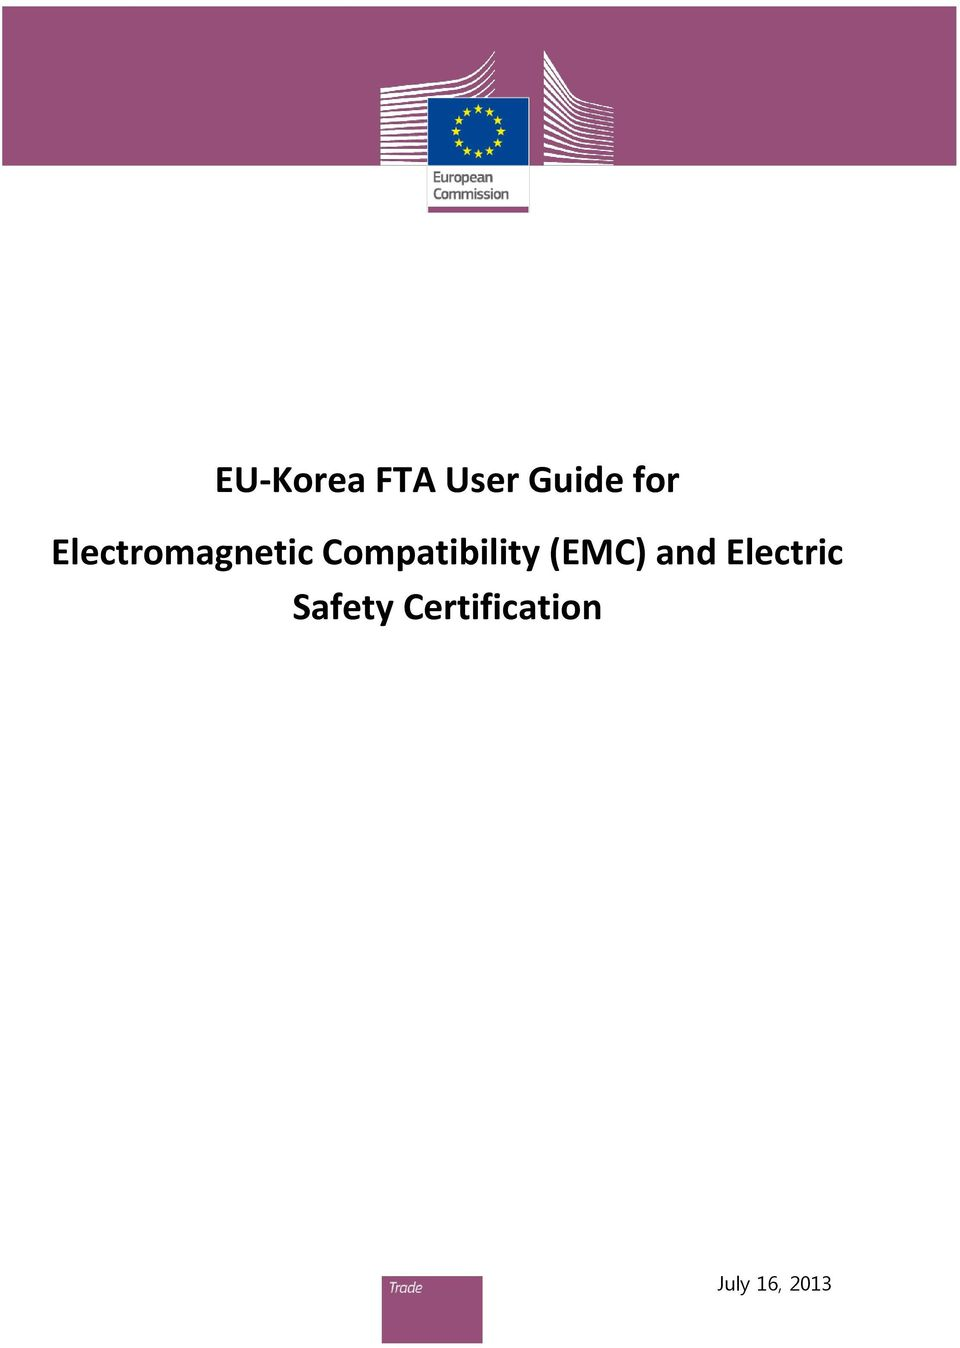 Compatibility (EMC) and